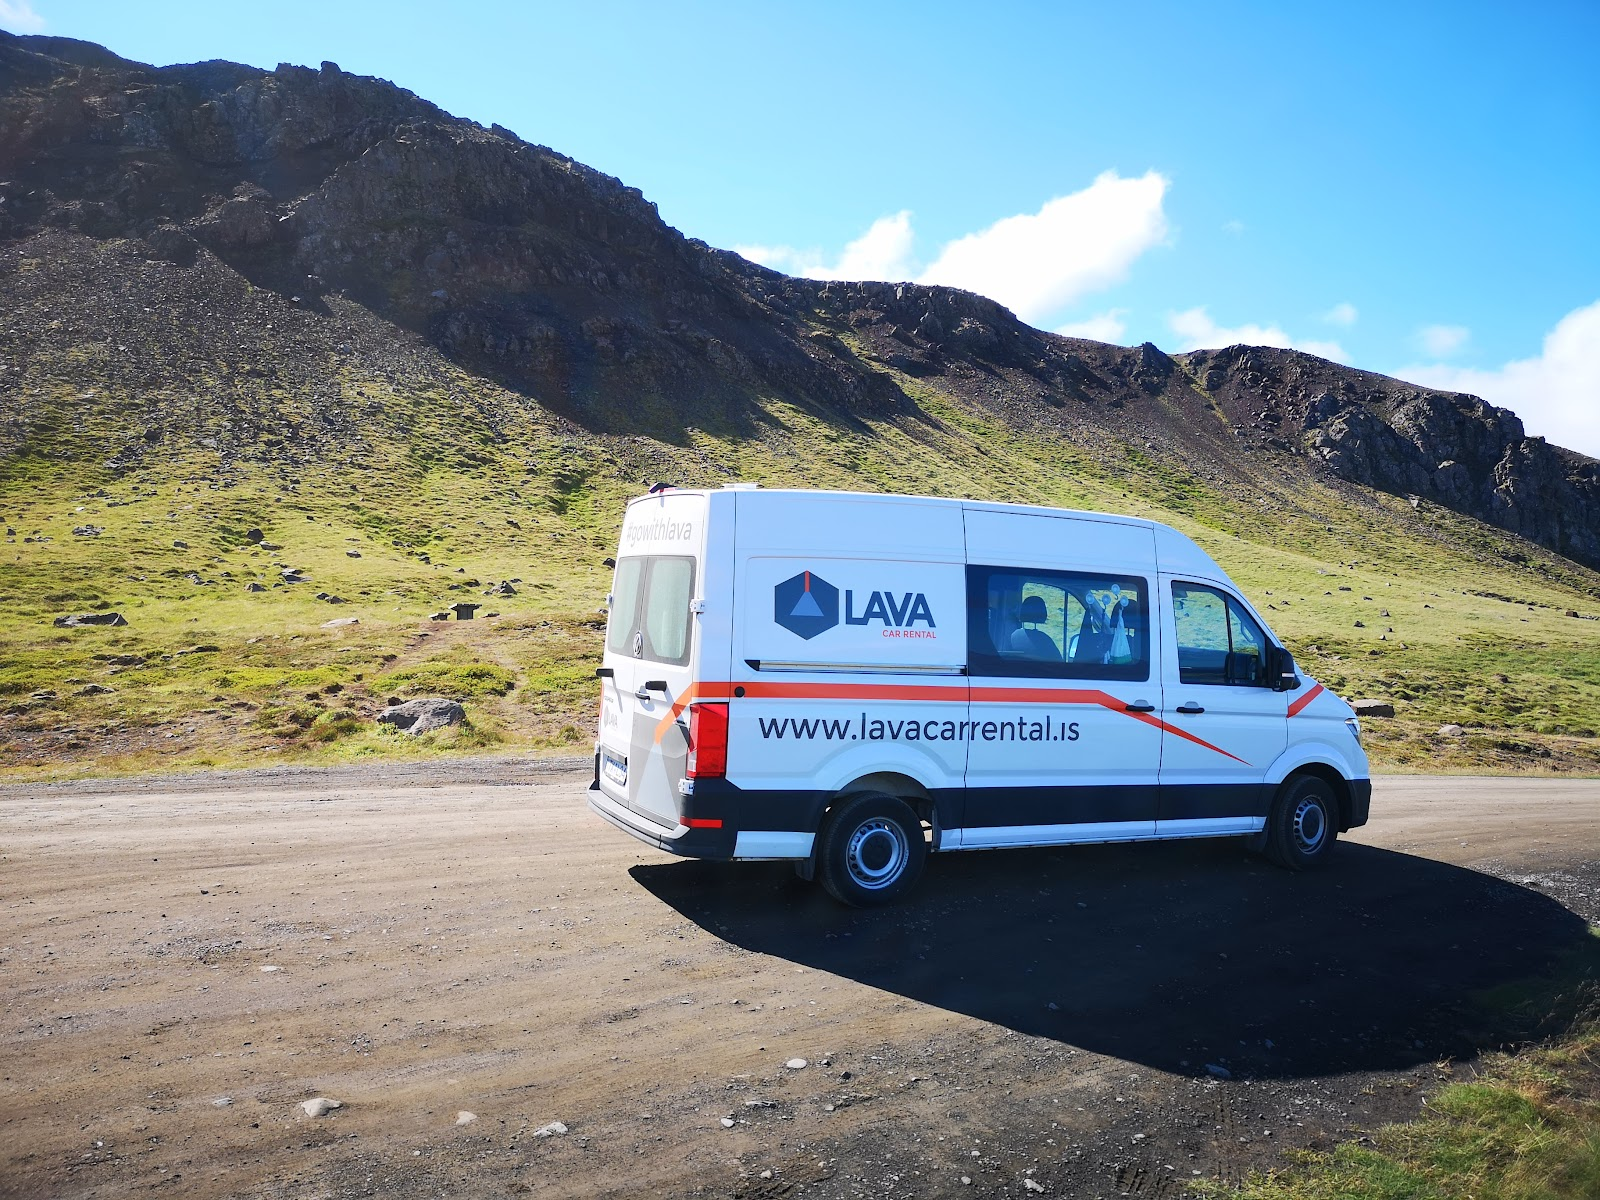 Campervan in Iceland on a mountain road.